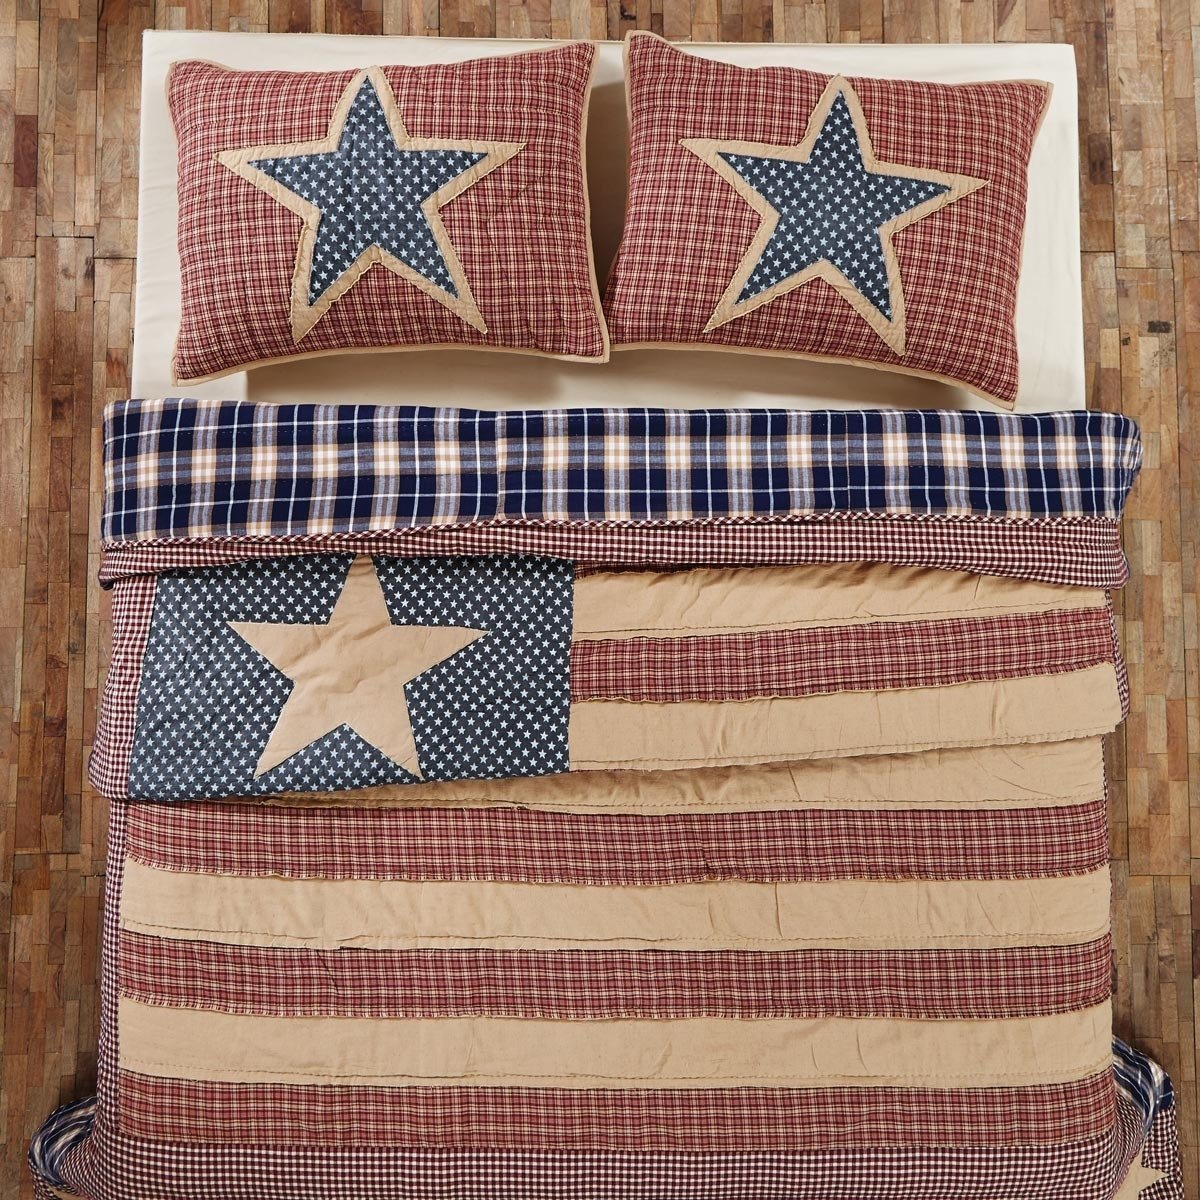 1pc Boys USA Flag Stripe Theme Quilt King, Star, American Country, Red Navy Tan, Elegant Boho Chic Chekered Striped Bedding, Fun Horizontal Sports Plaided Themed Pattern by un (Image #1)